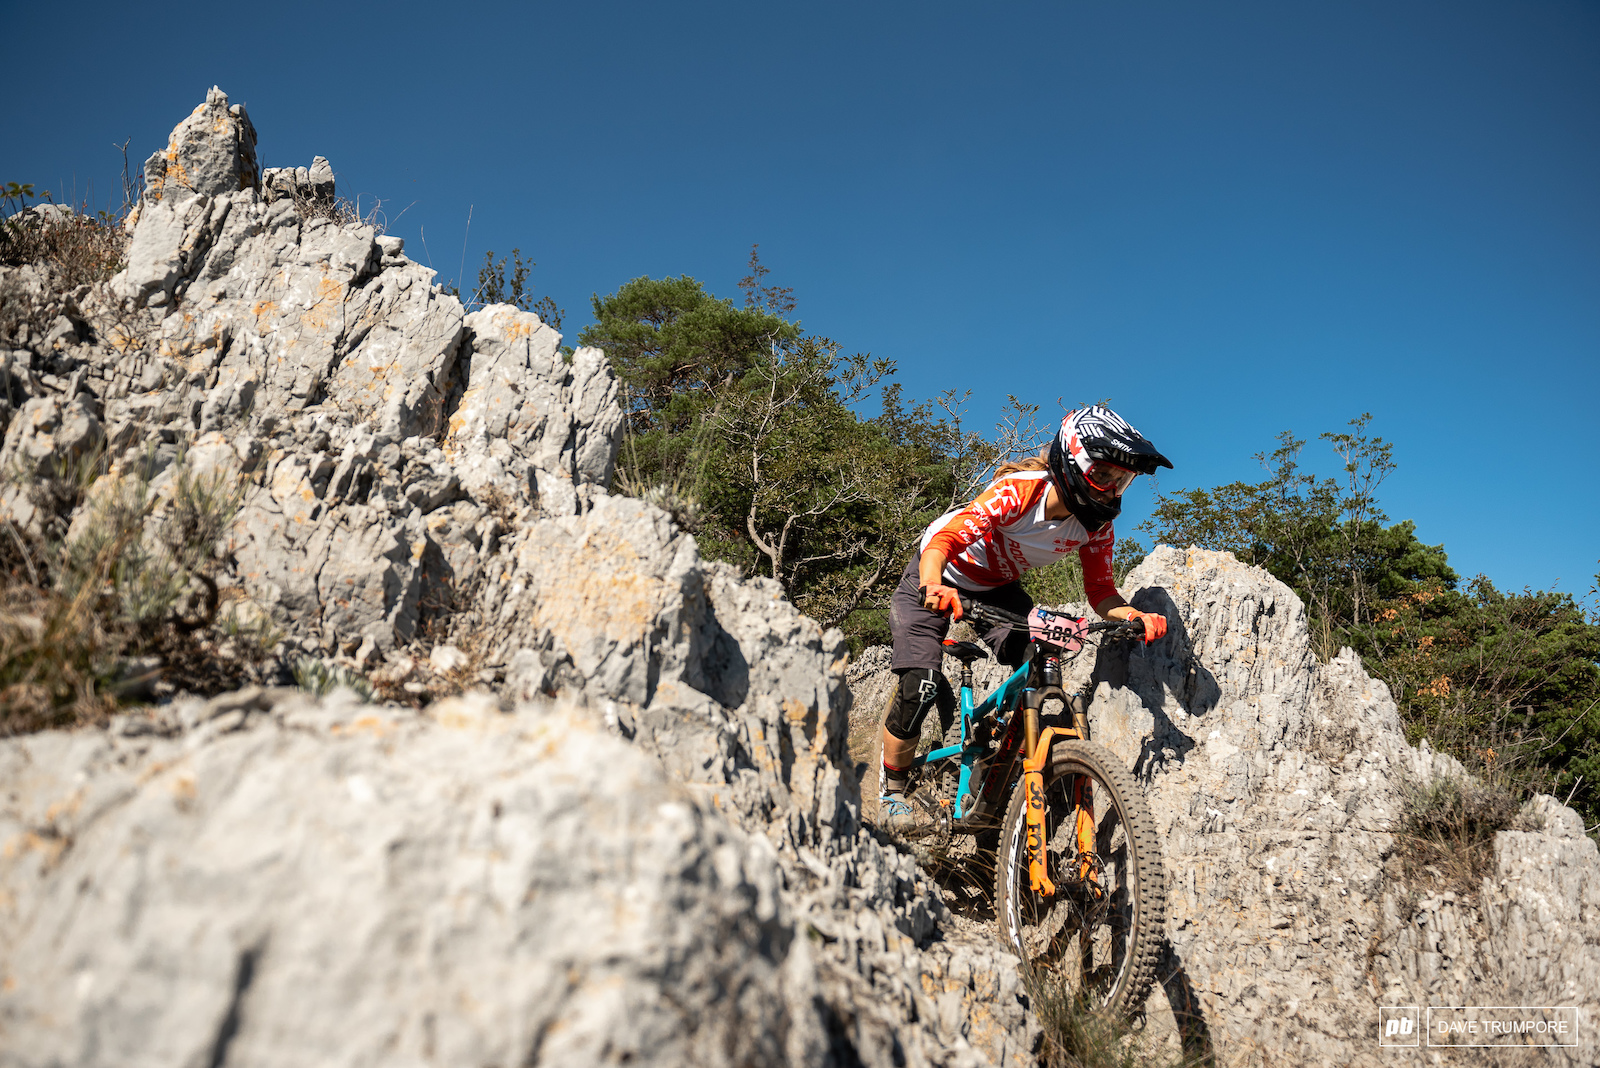 Andreane Lanthier Nadeau has been getting faster with each race and her podium finish last week in Spain proves she can mix it up with the best riders at the front of the race.